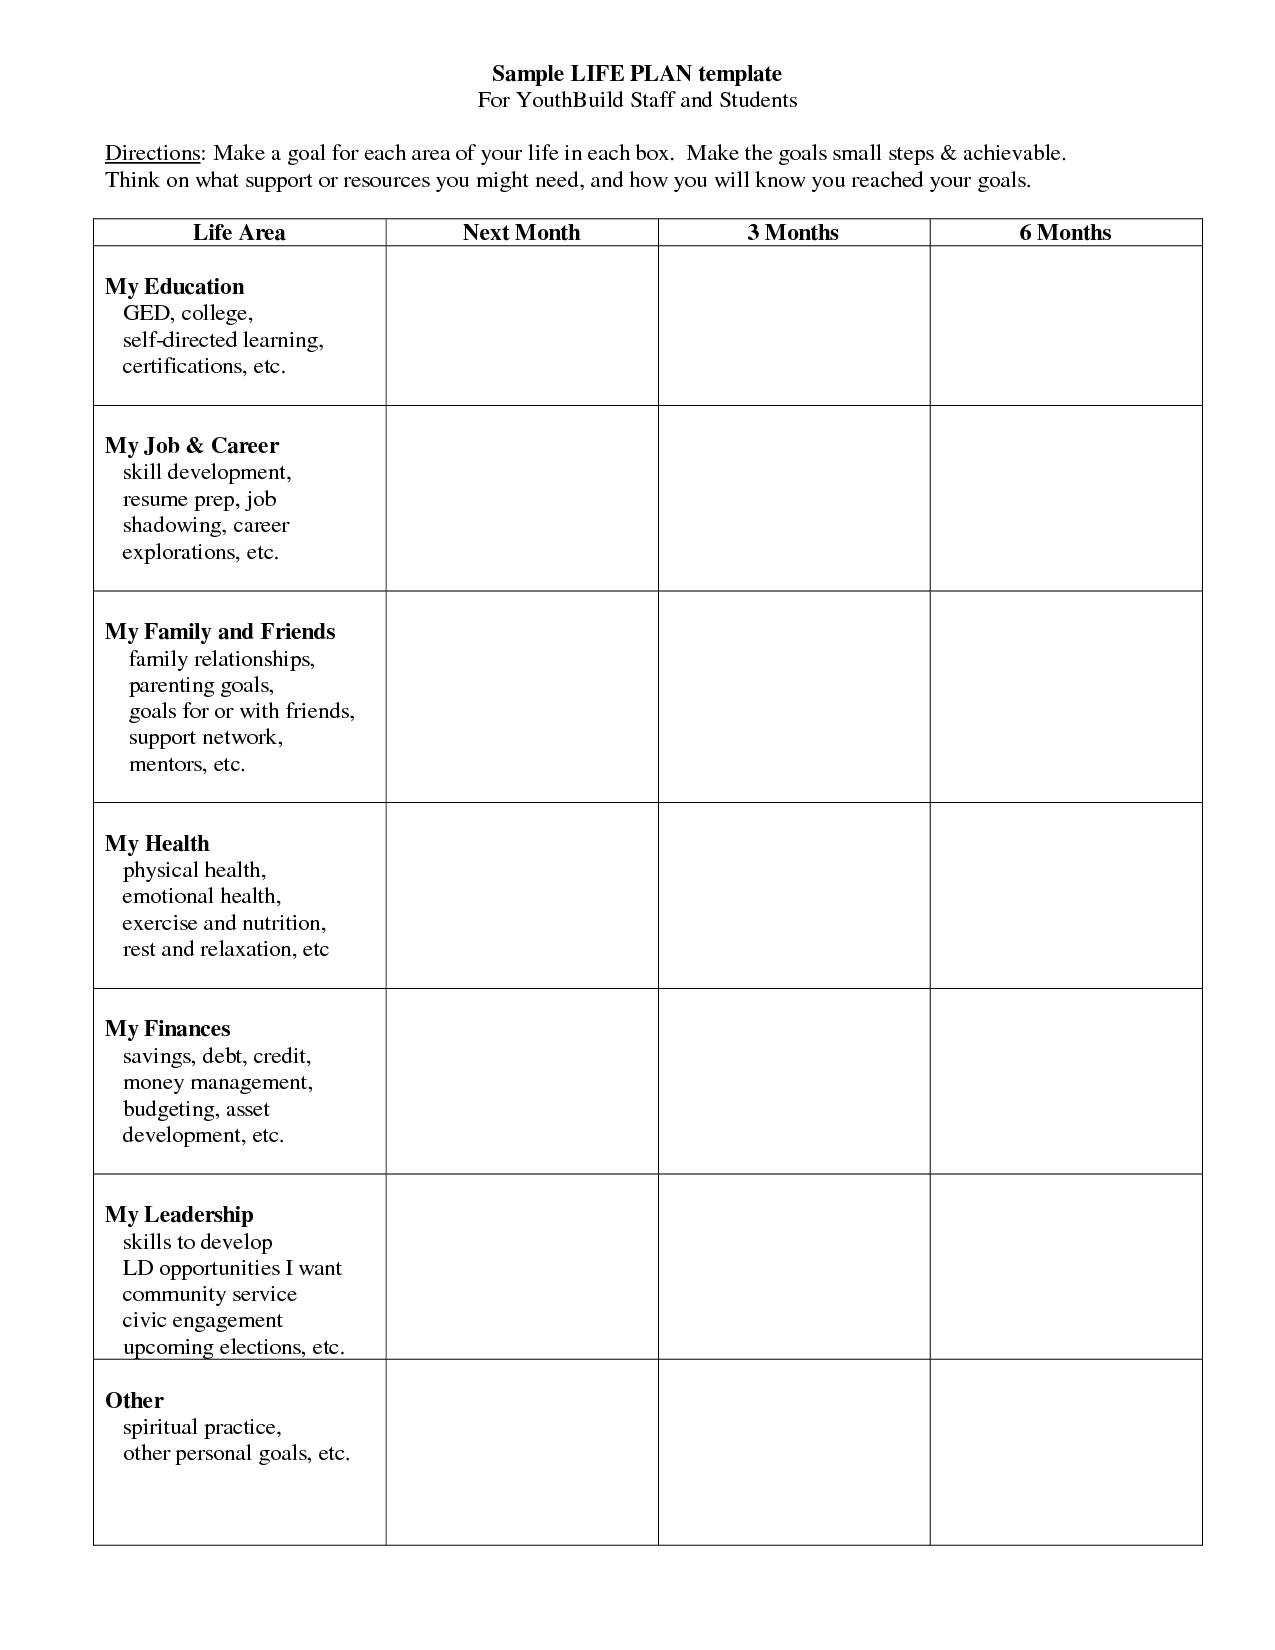 Sample Life Plan Template For Youthbuild Staff And